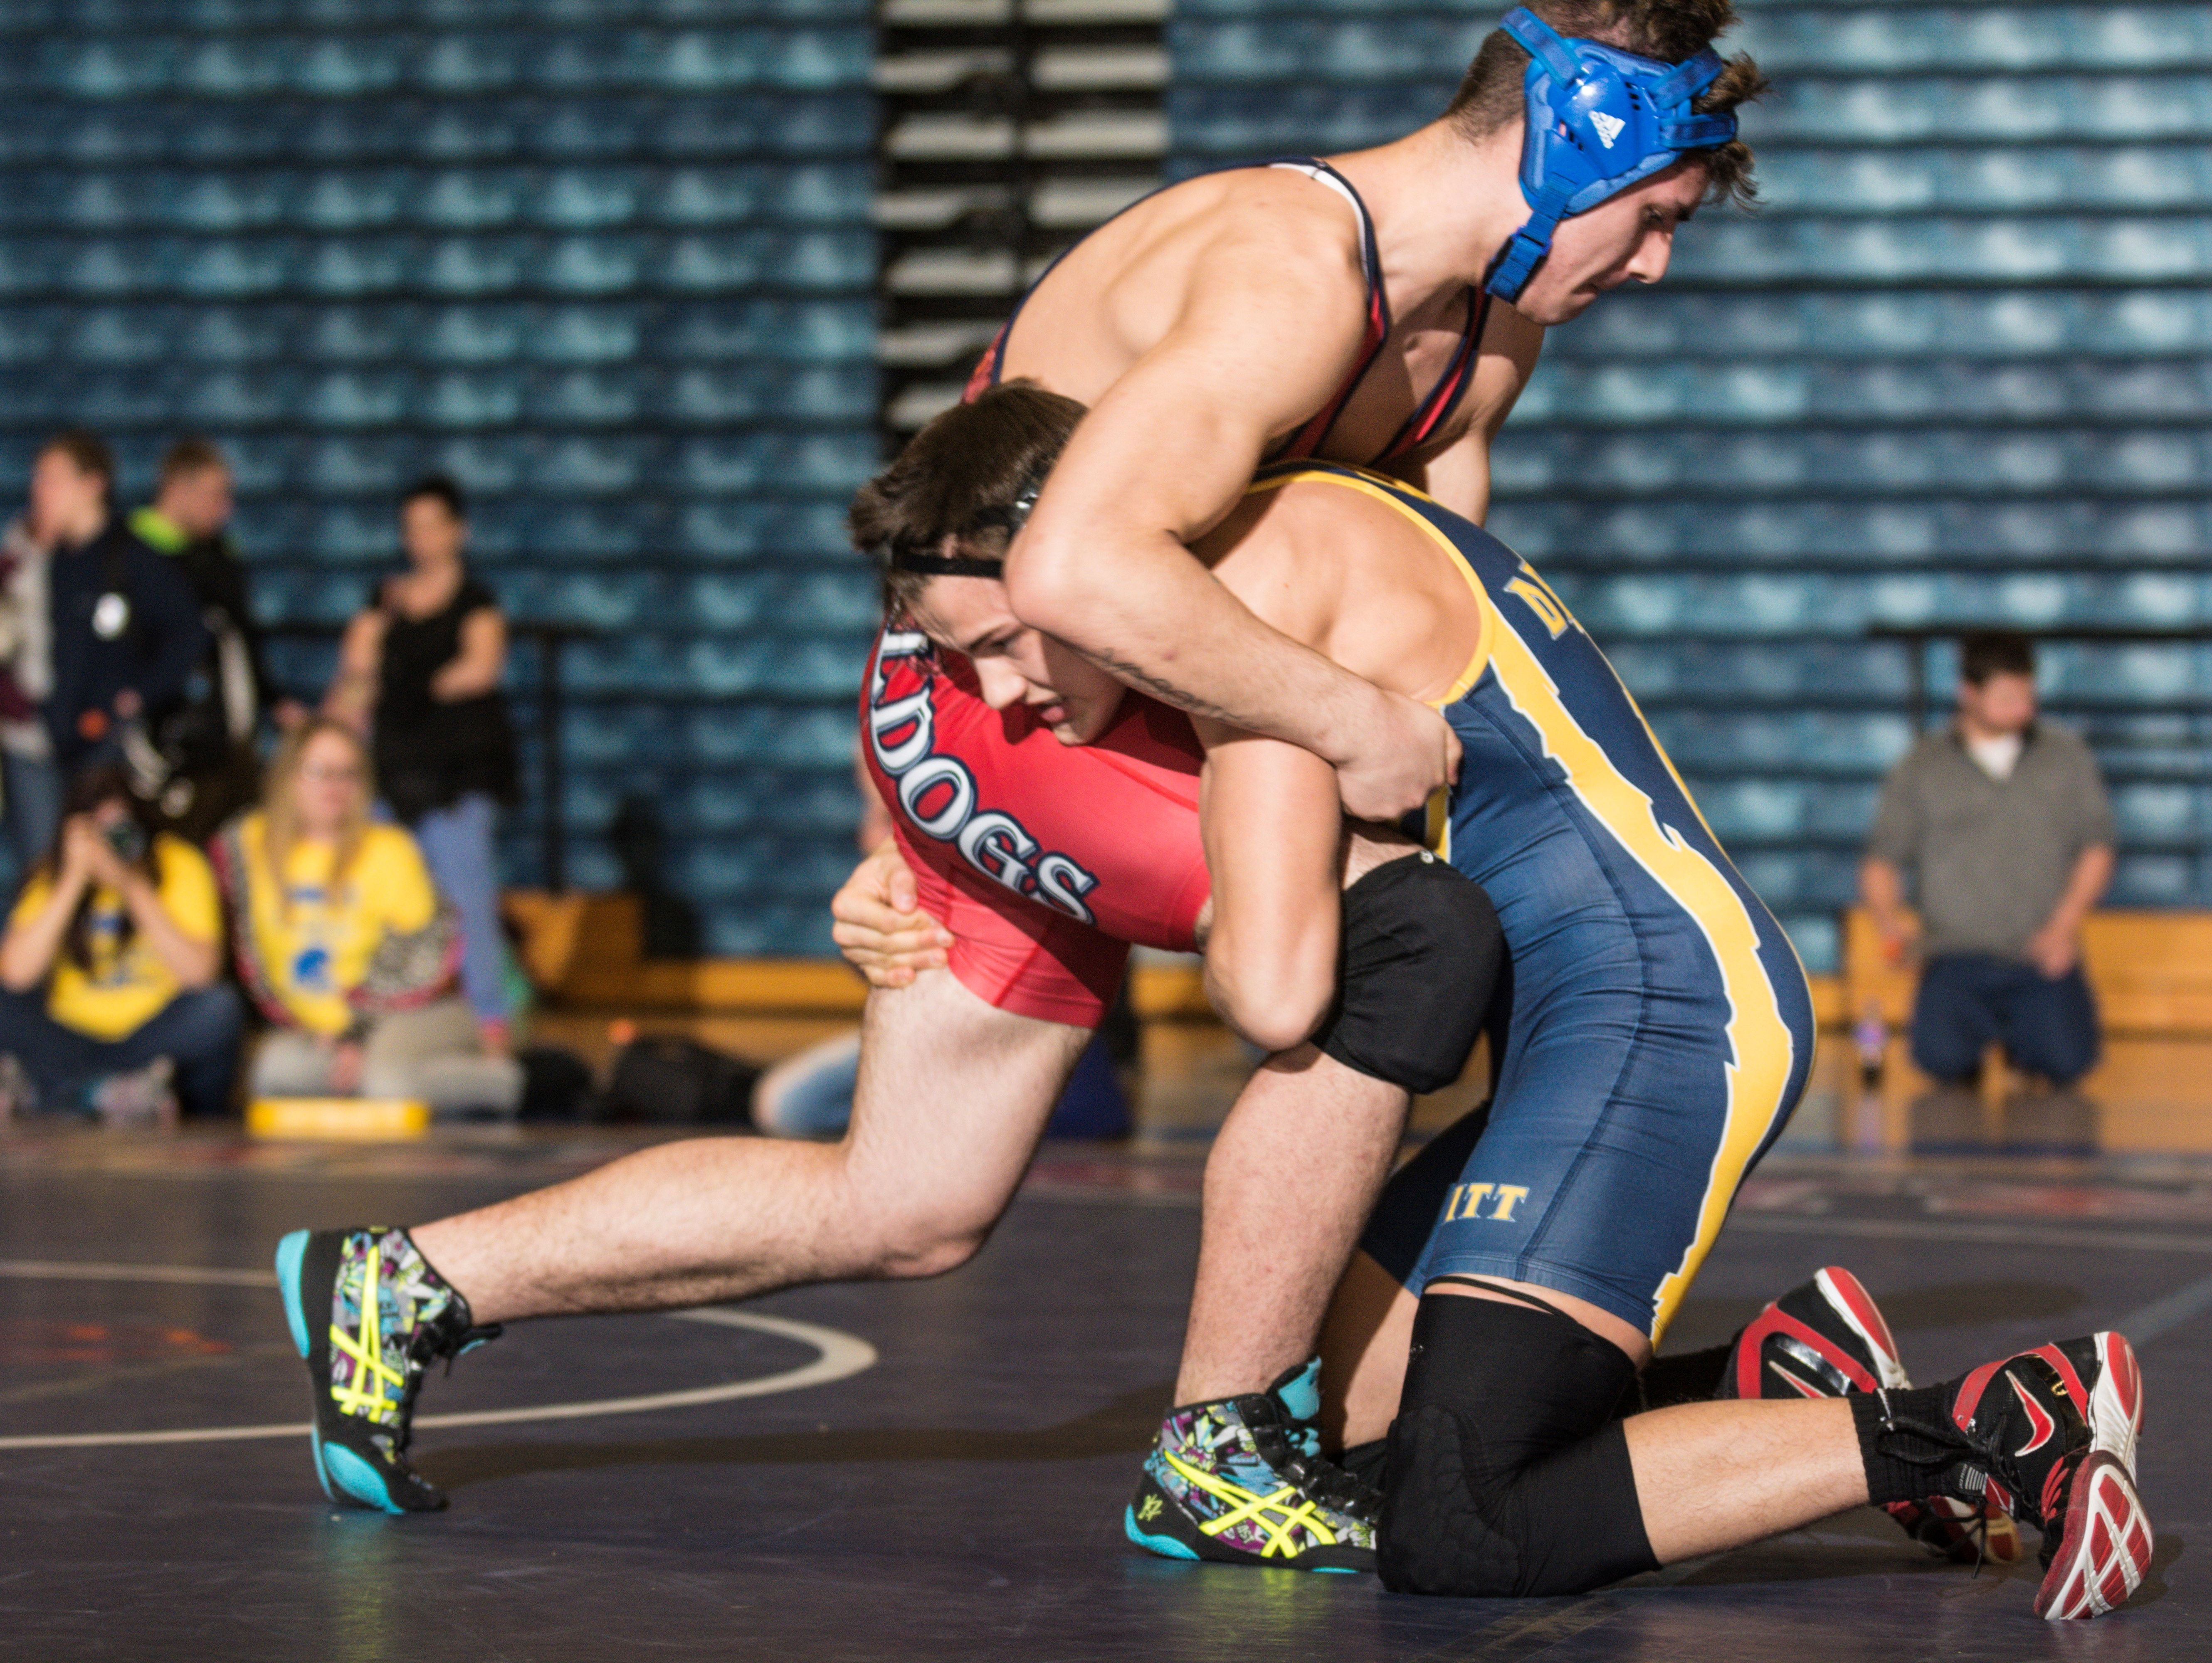 Lucas McFarland, right, of DeWitt gets in a single-leg of Devin Vasquez of Mason their 171lb. Division 2 regional final match Wednesday February 15, 2017 at Mason.